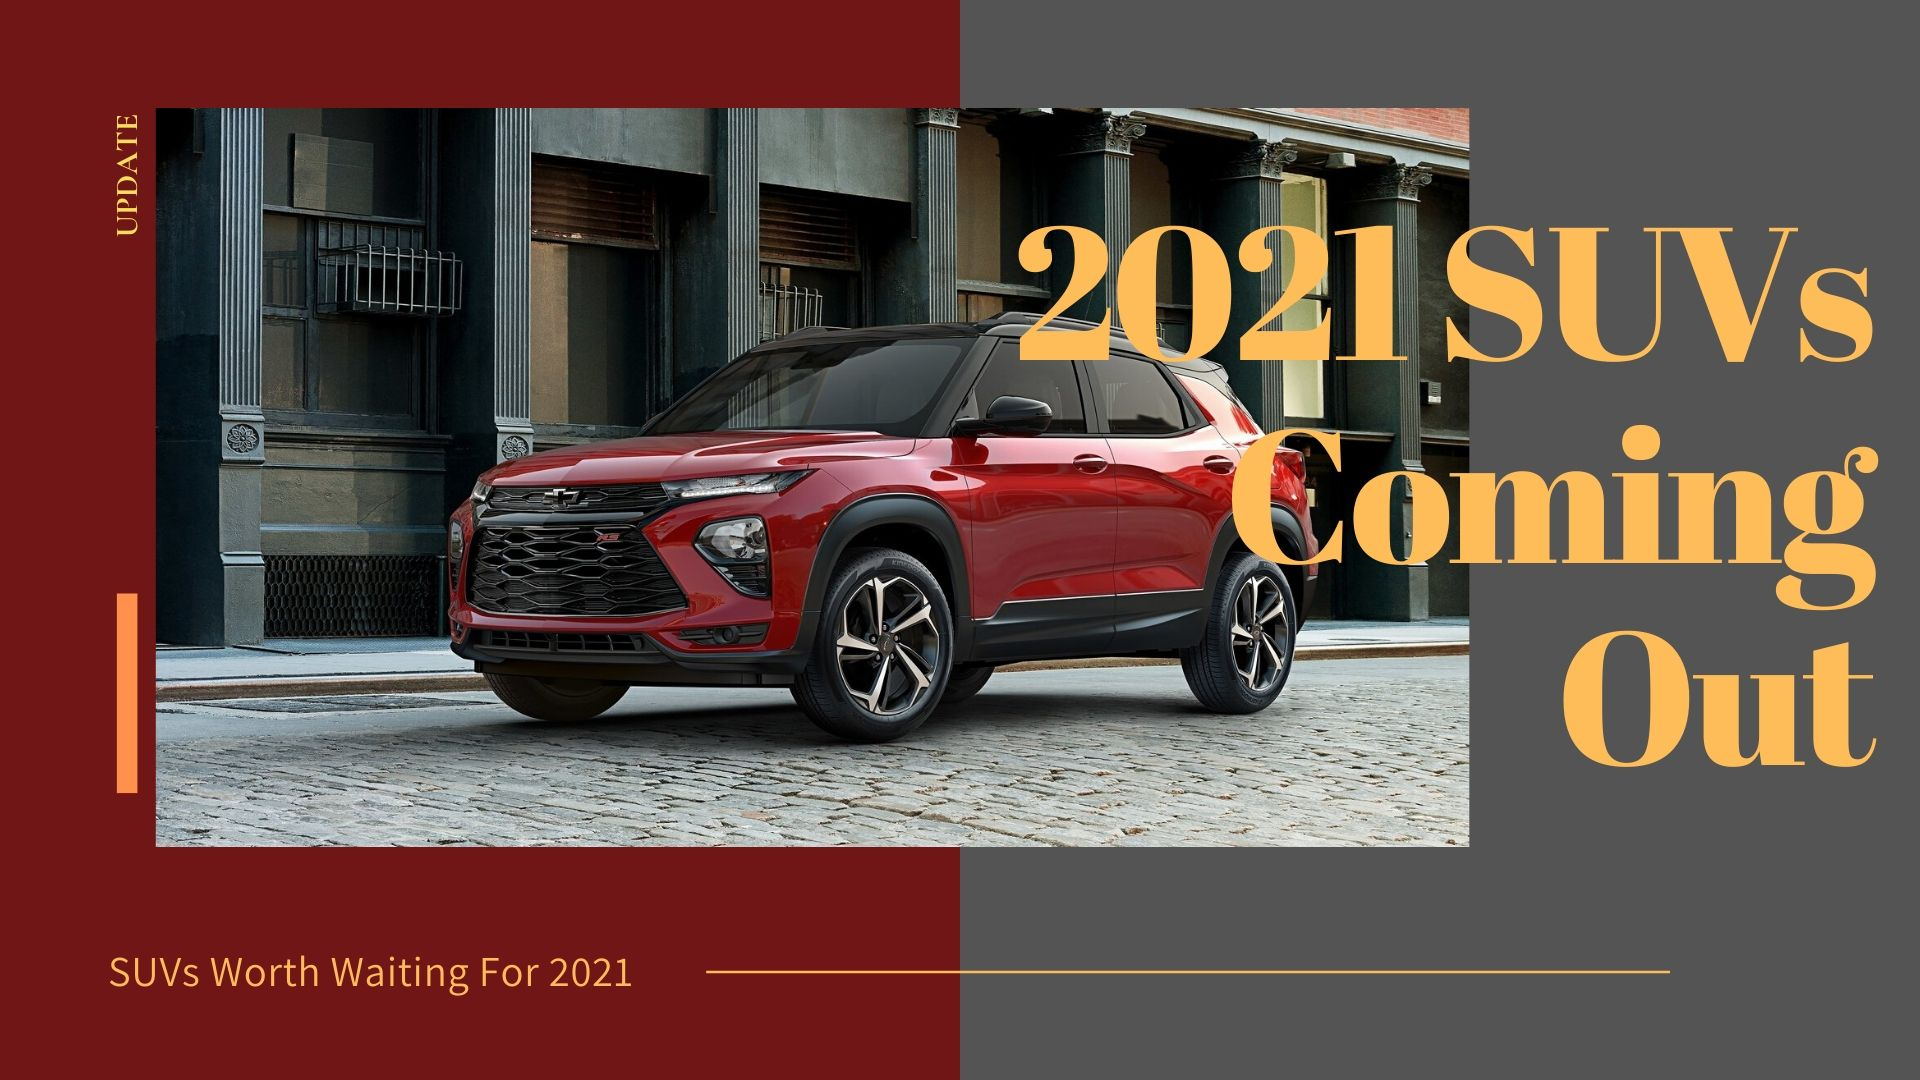 best future suvs worth waiting for - 2021 suvs coming out